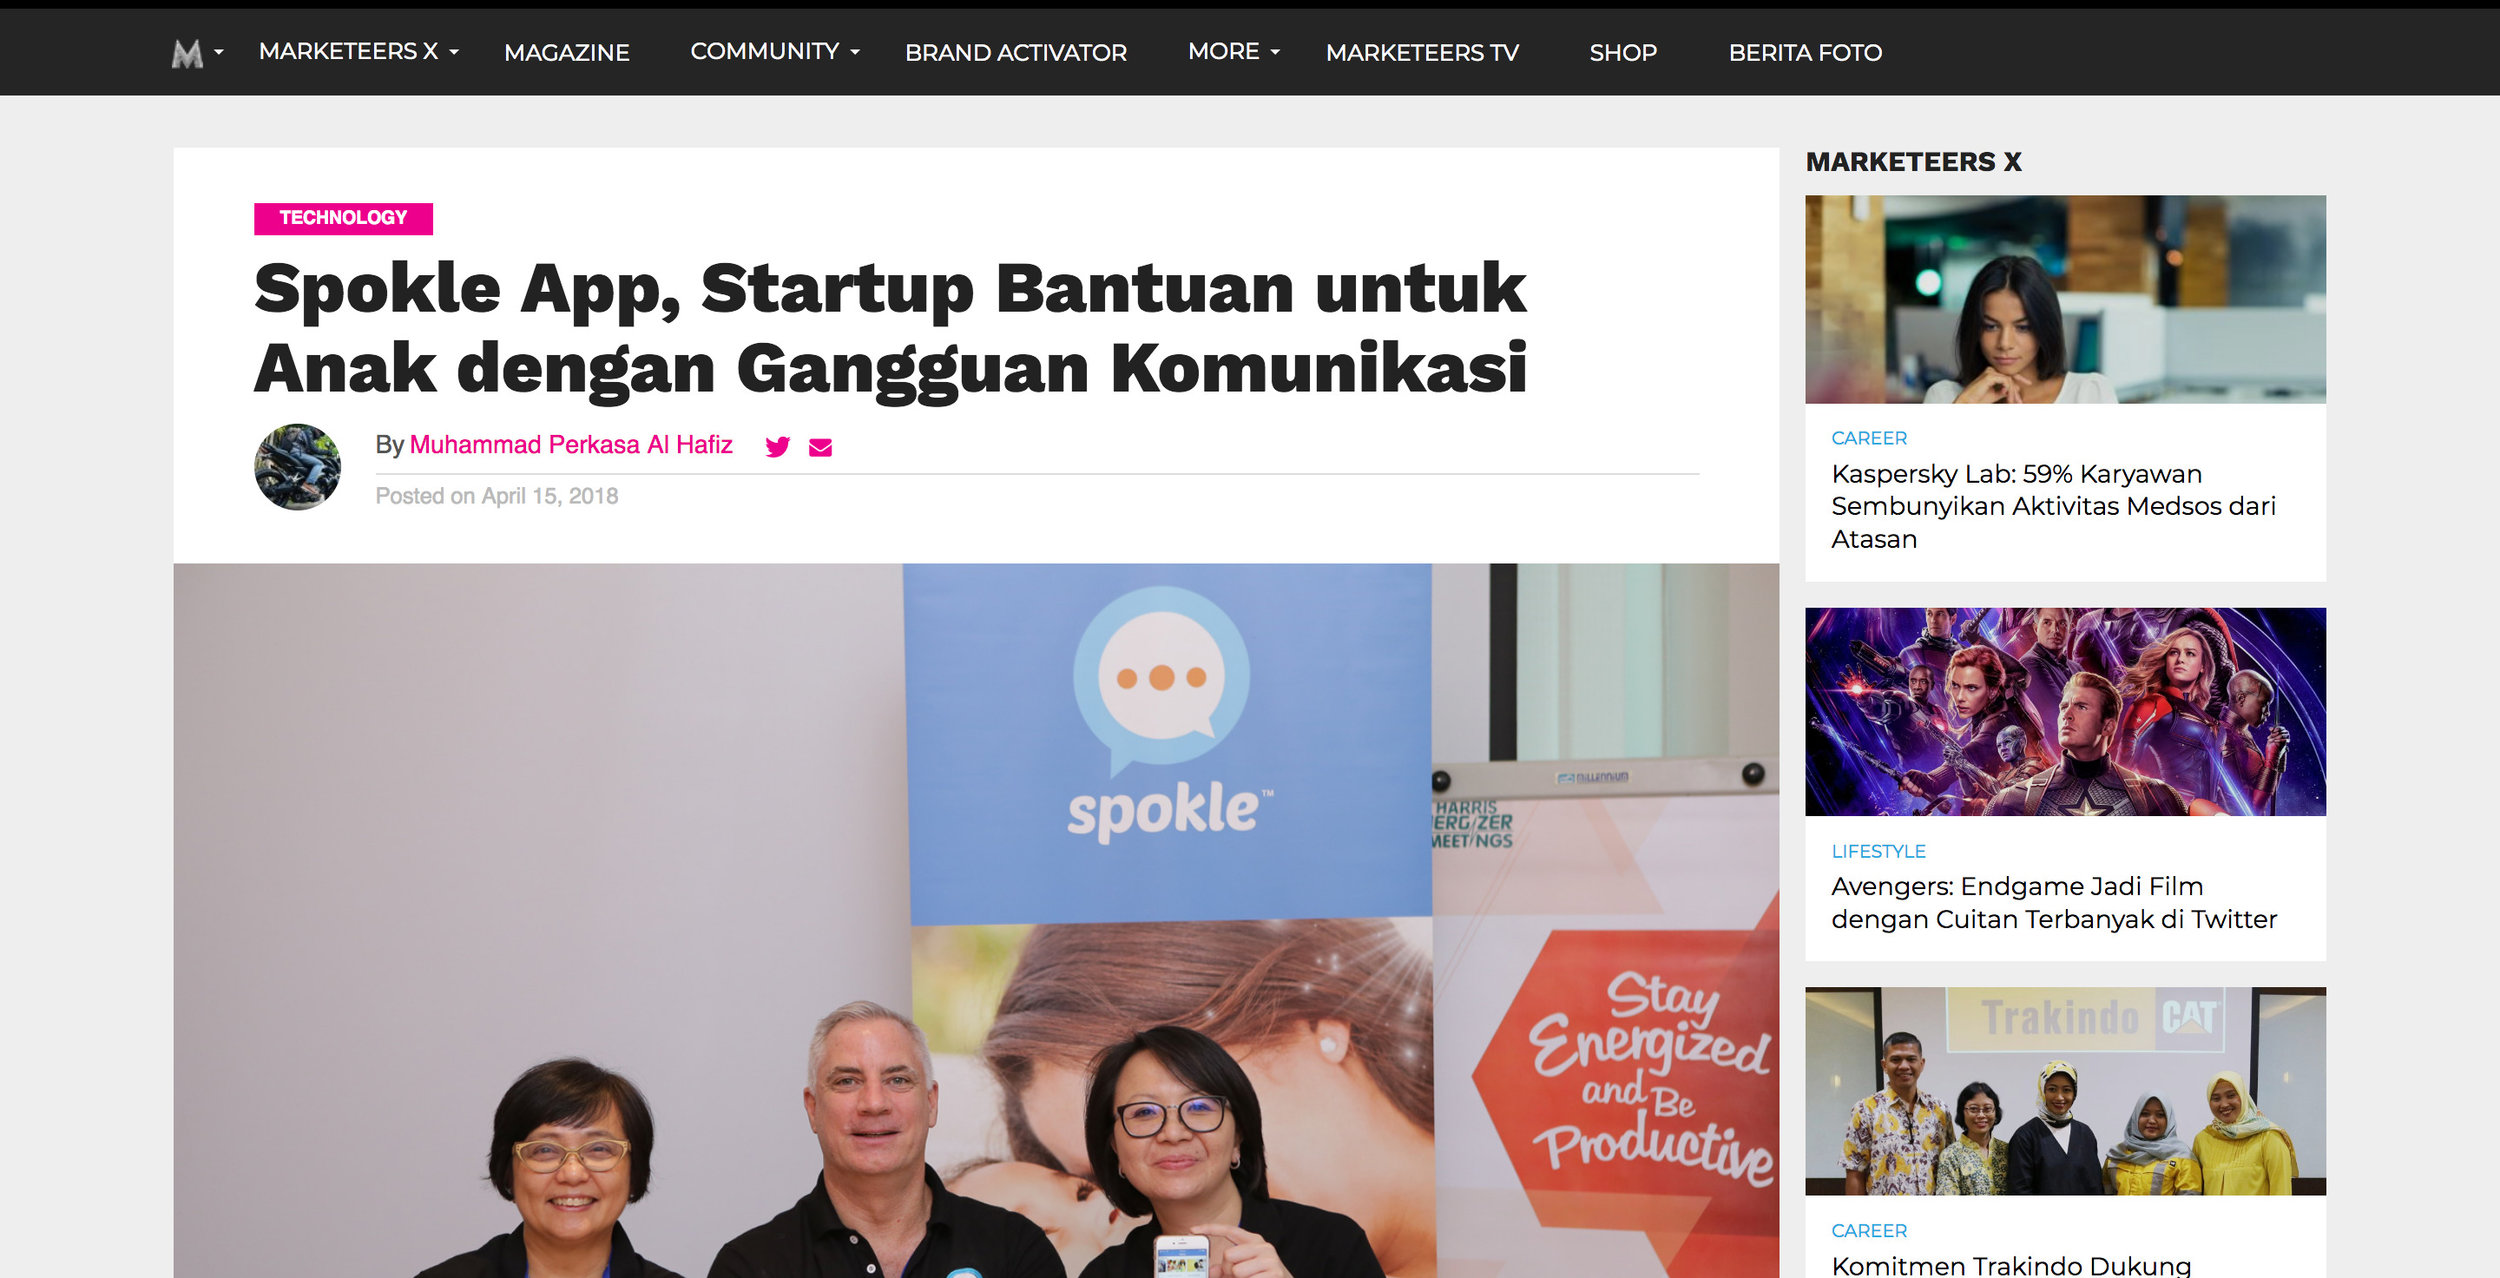 Marketeers article about Spokle App